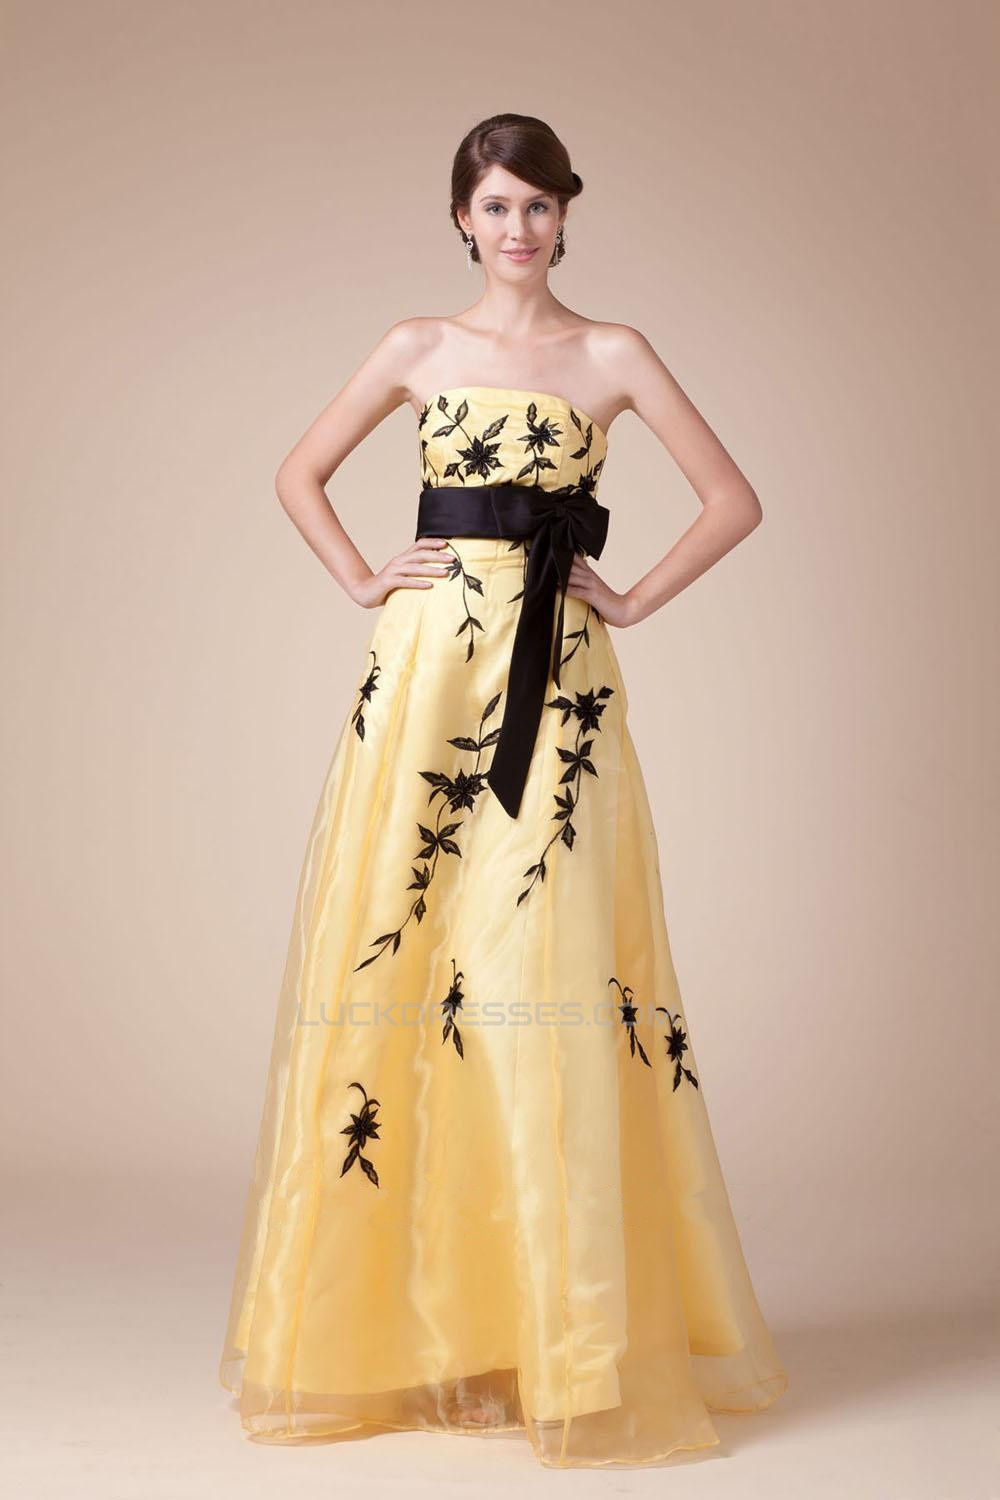 A-Line Strapless Black Yellow Long Prom Evening Dresses ED010799